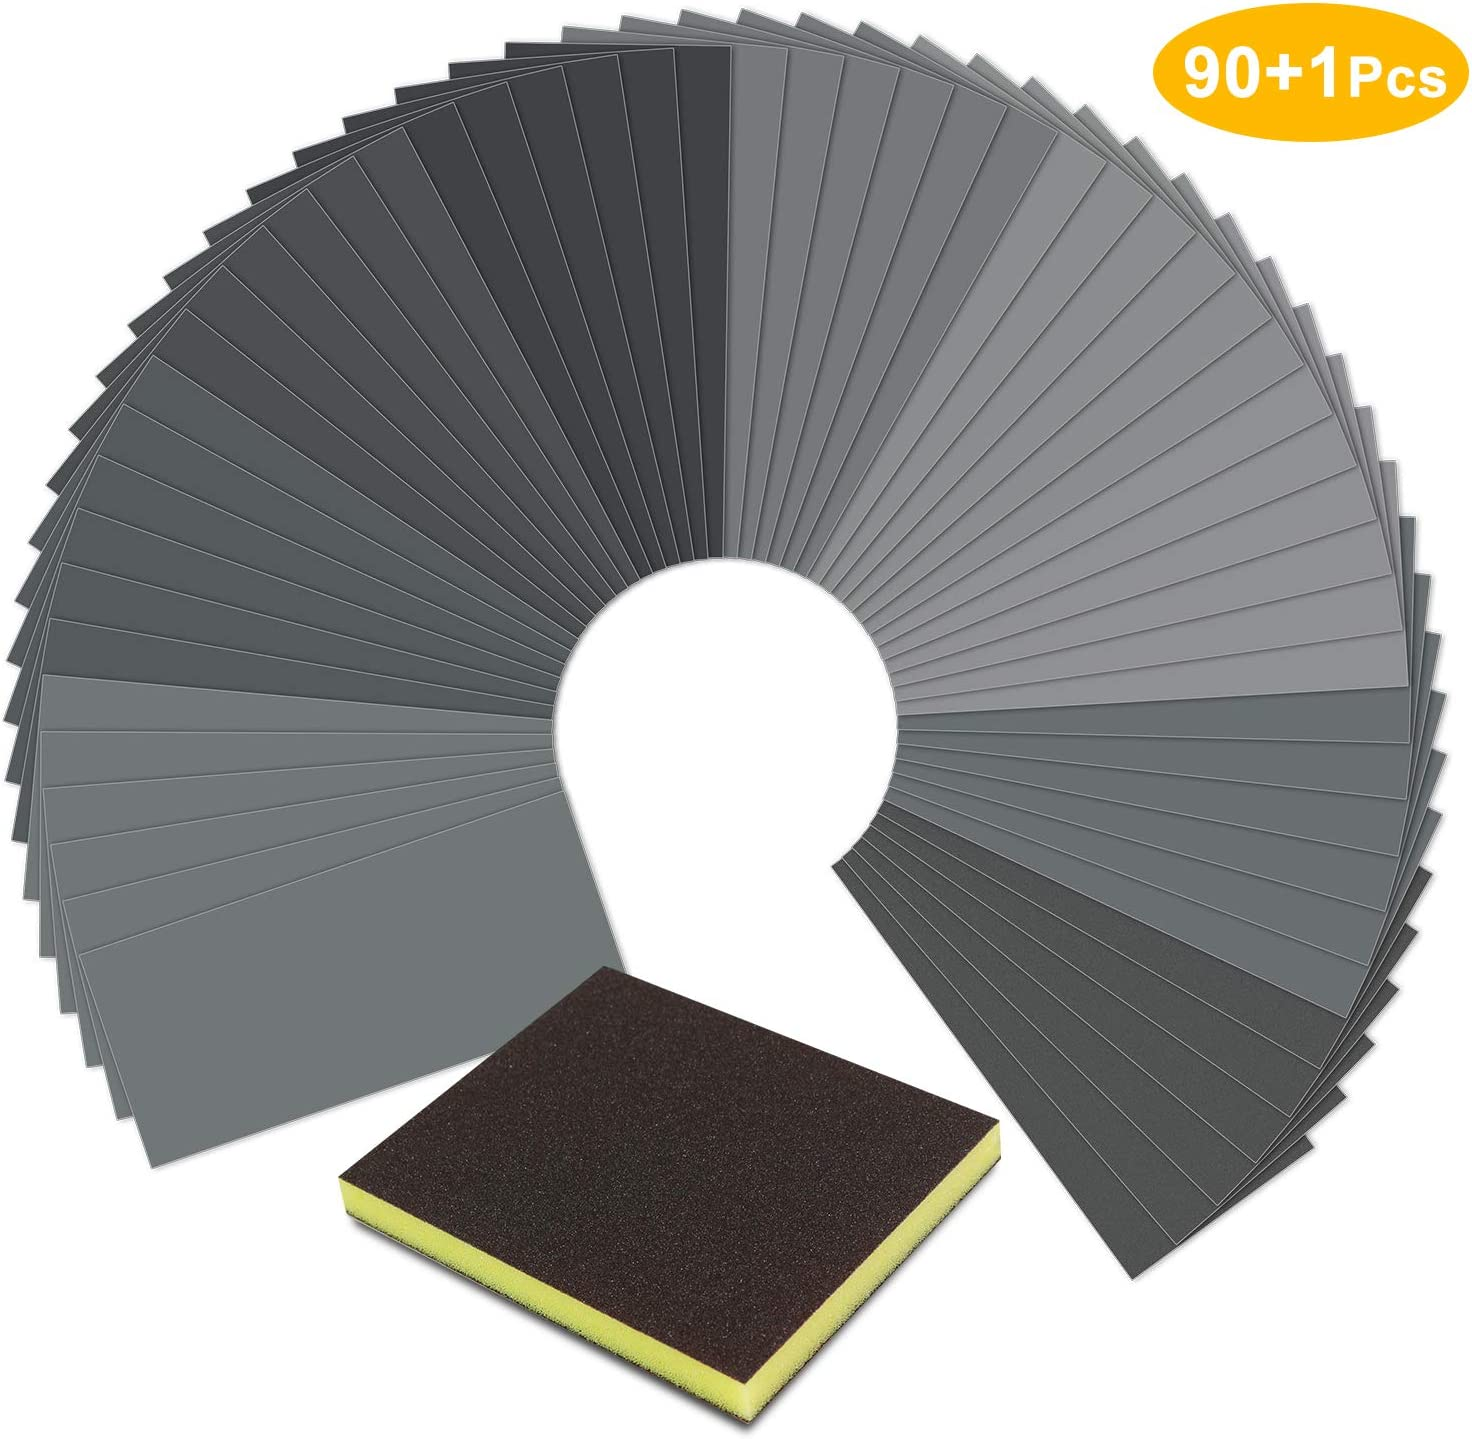 90 Pcs Sandpaper,Wet Dry Waterproof Sand Paper with Sanding Sponge Metal Sanding by SKOCHE Wood Furniture Finishing 90 Pcs 400 to 3000 Grit Sanding Paper 9x3.6 Inch for Automotive Polishing